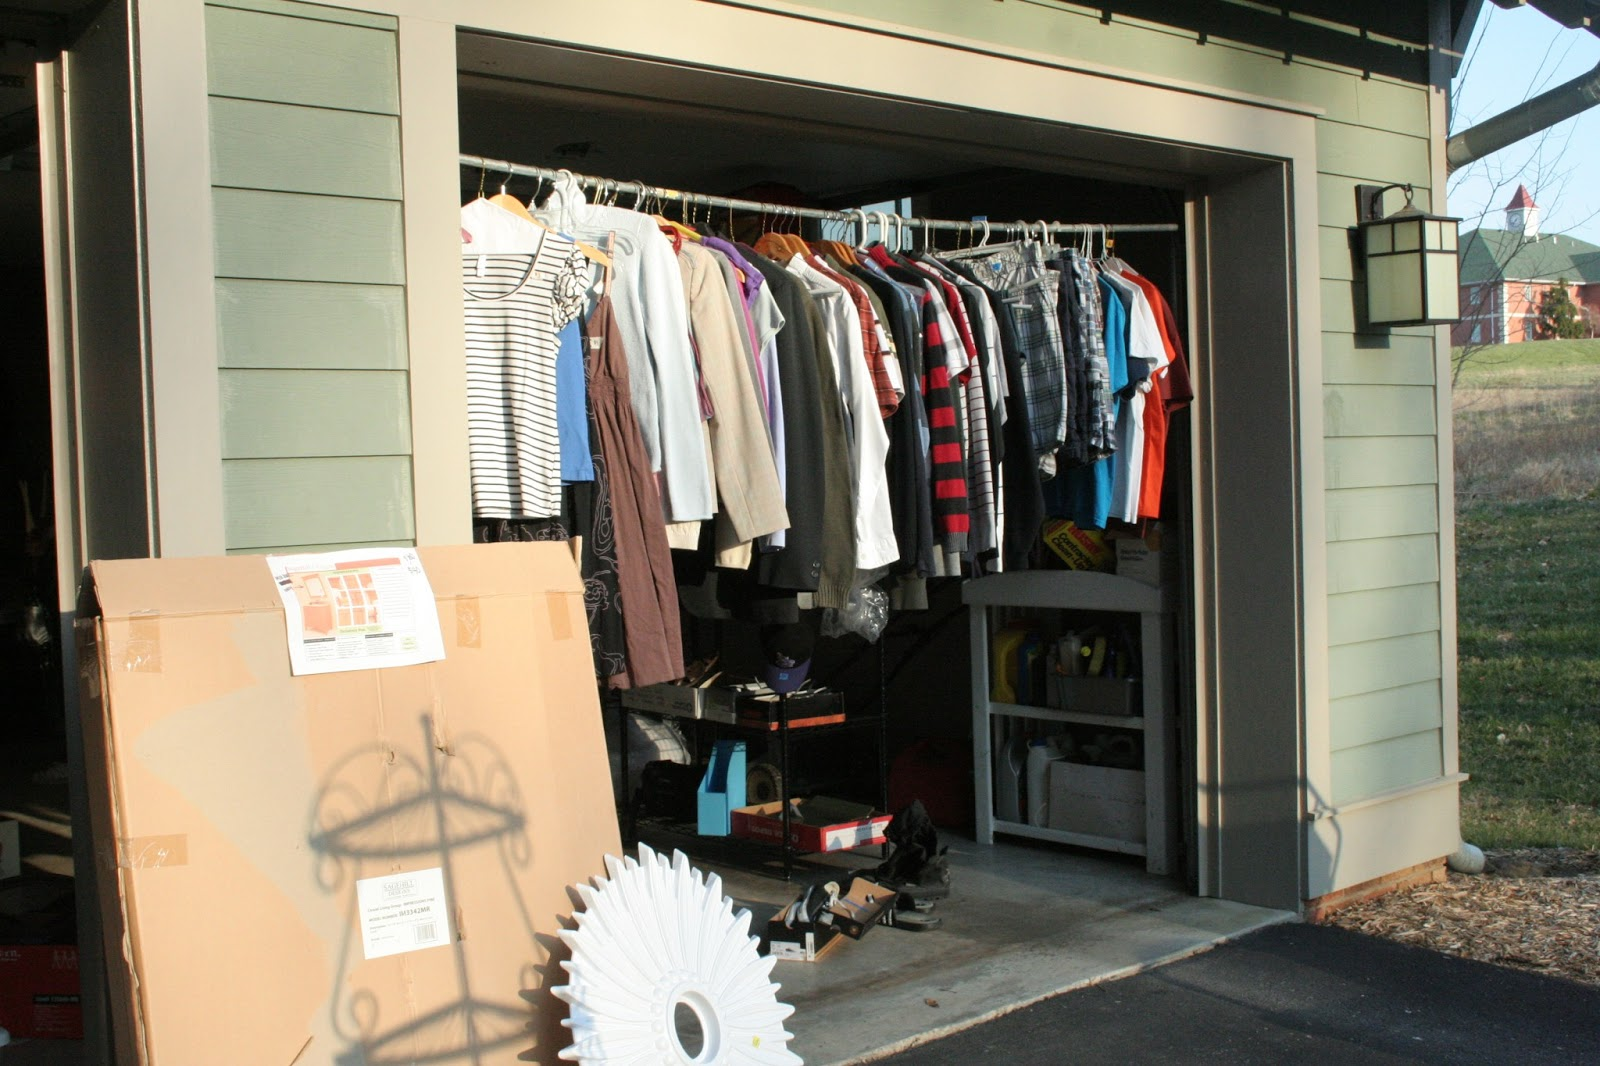 clothes rack ideas for garage sale - Homemade Clothing Displays Ideas